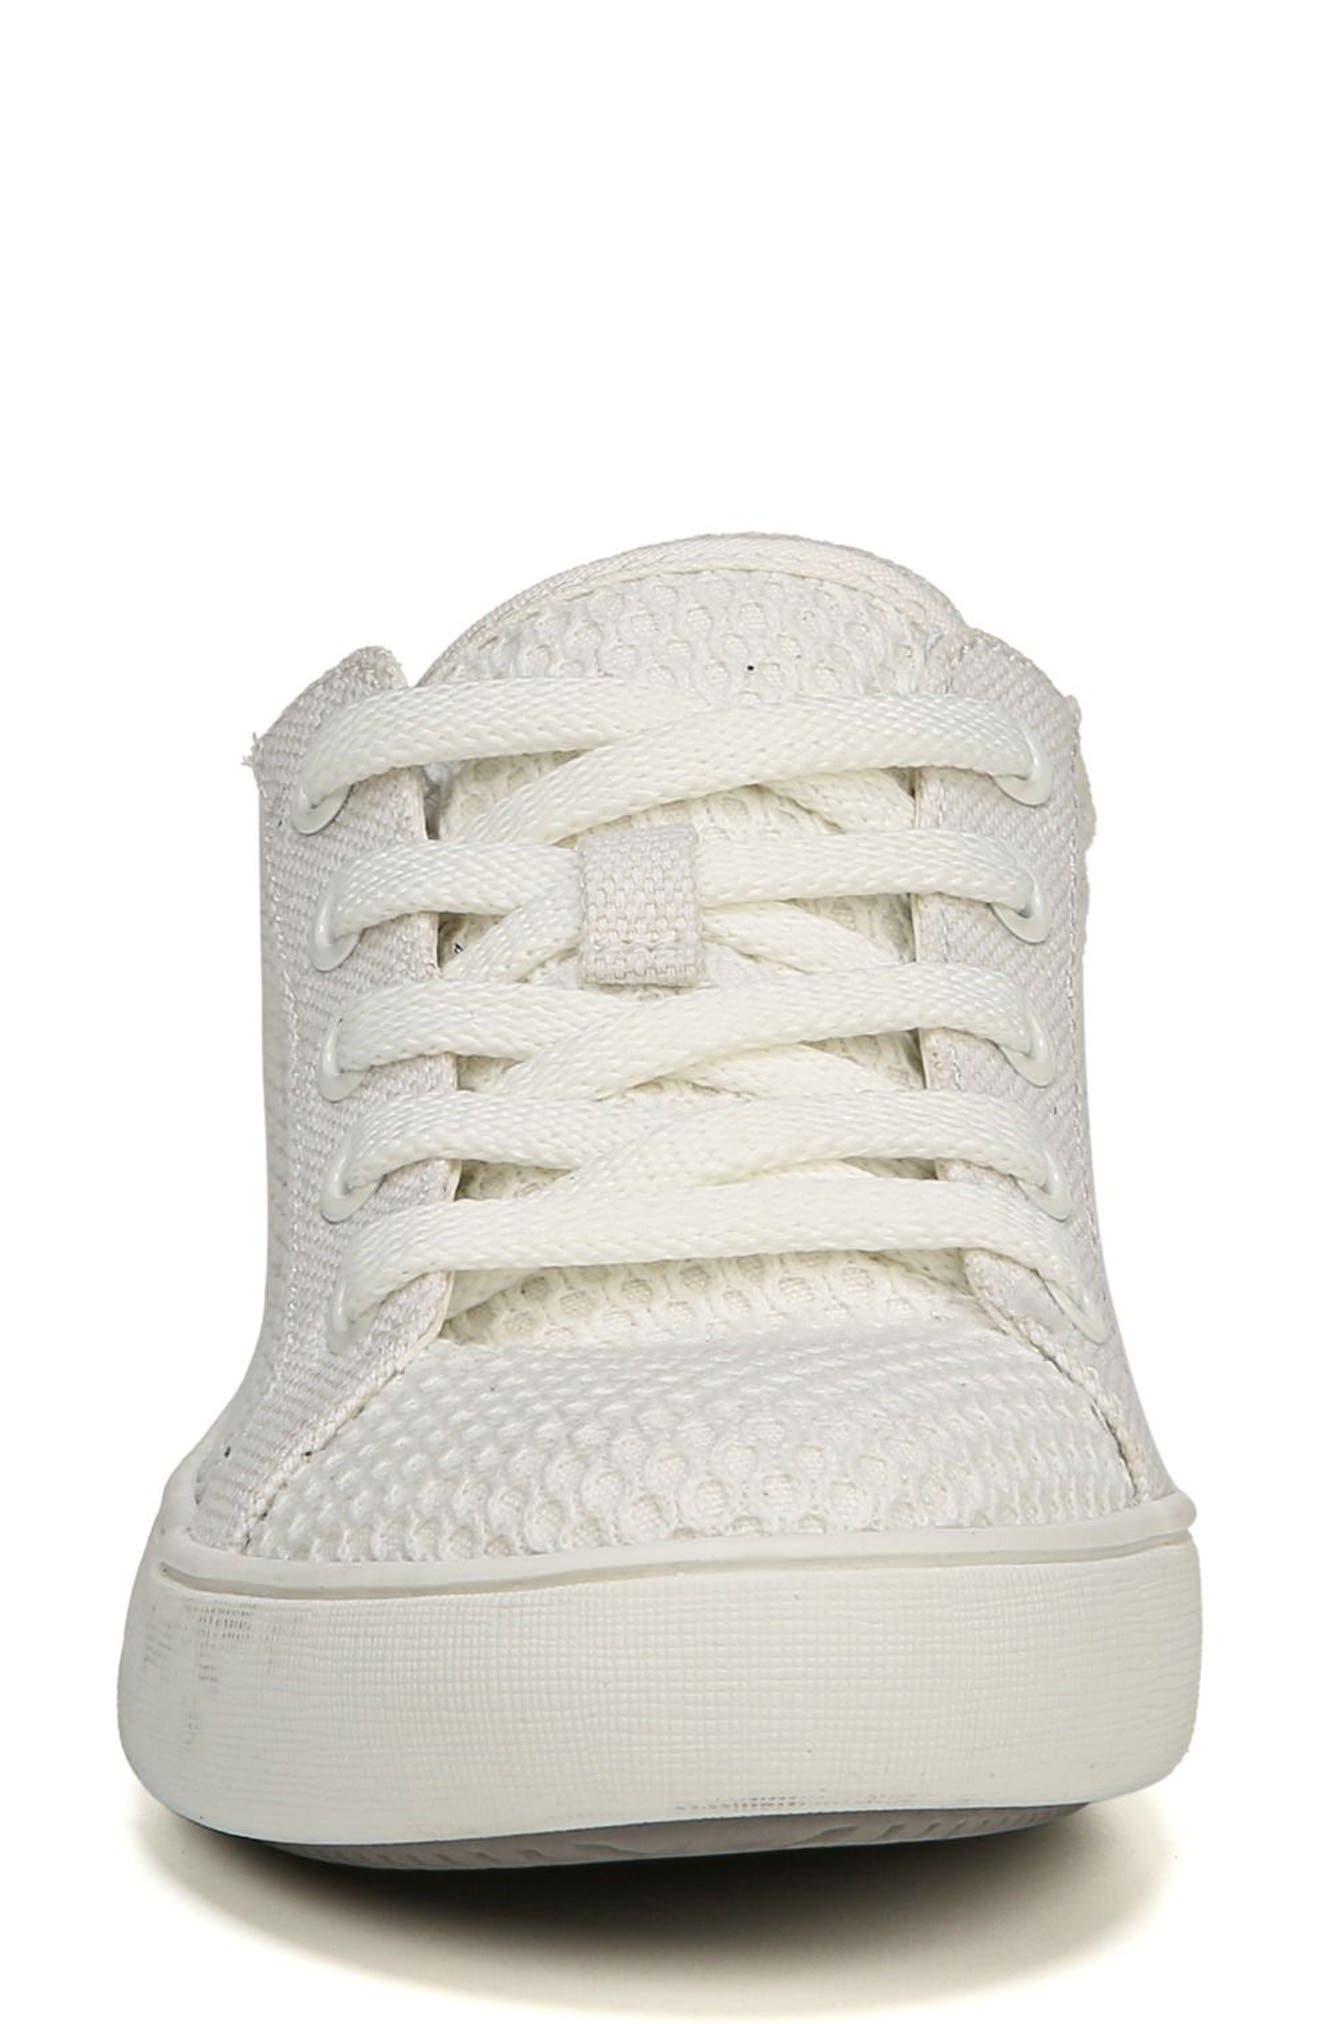 NATURALIZER, Morrison III Perforated Sneaker, Alternate thumbnail 4, color, WHITE FABRIC